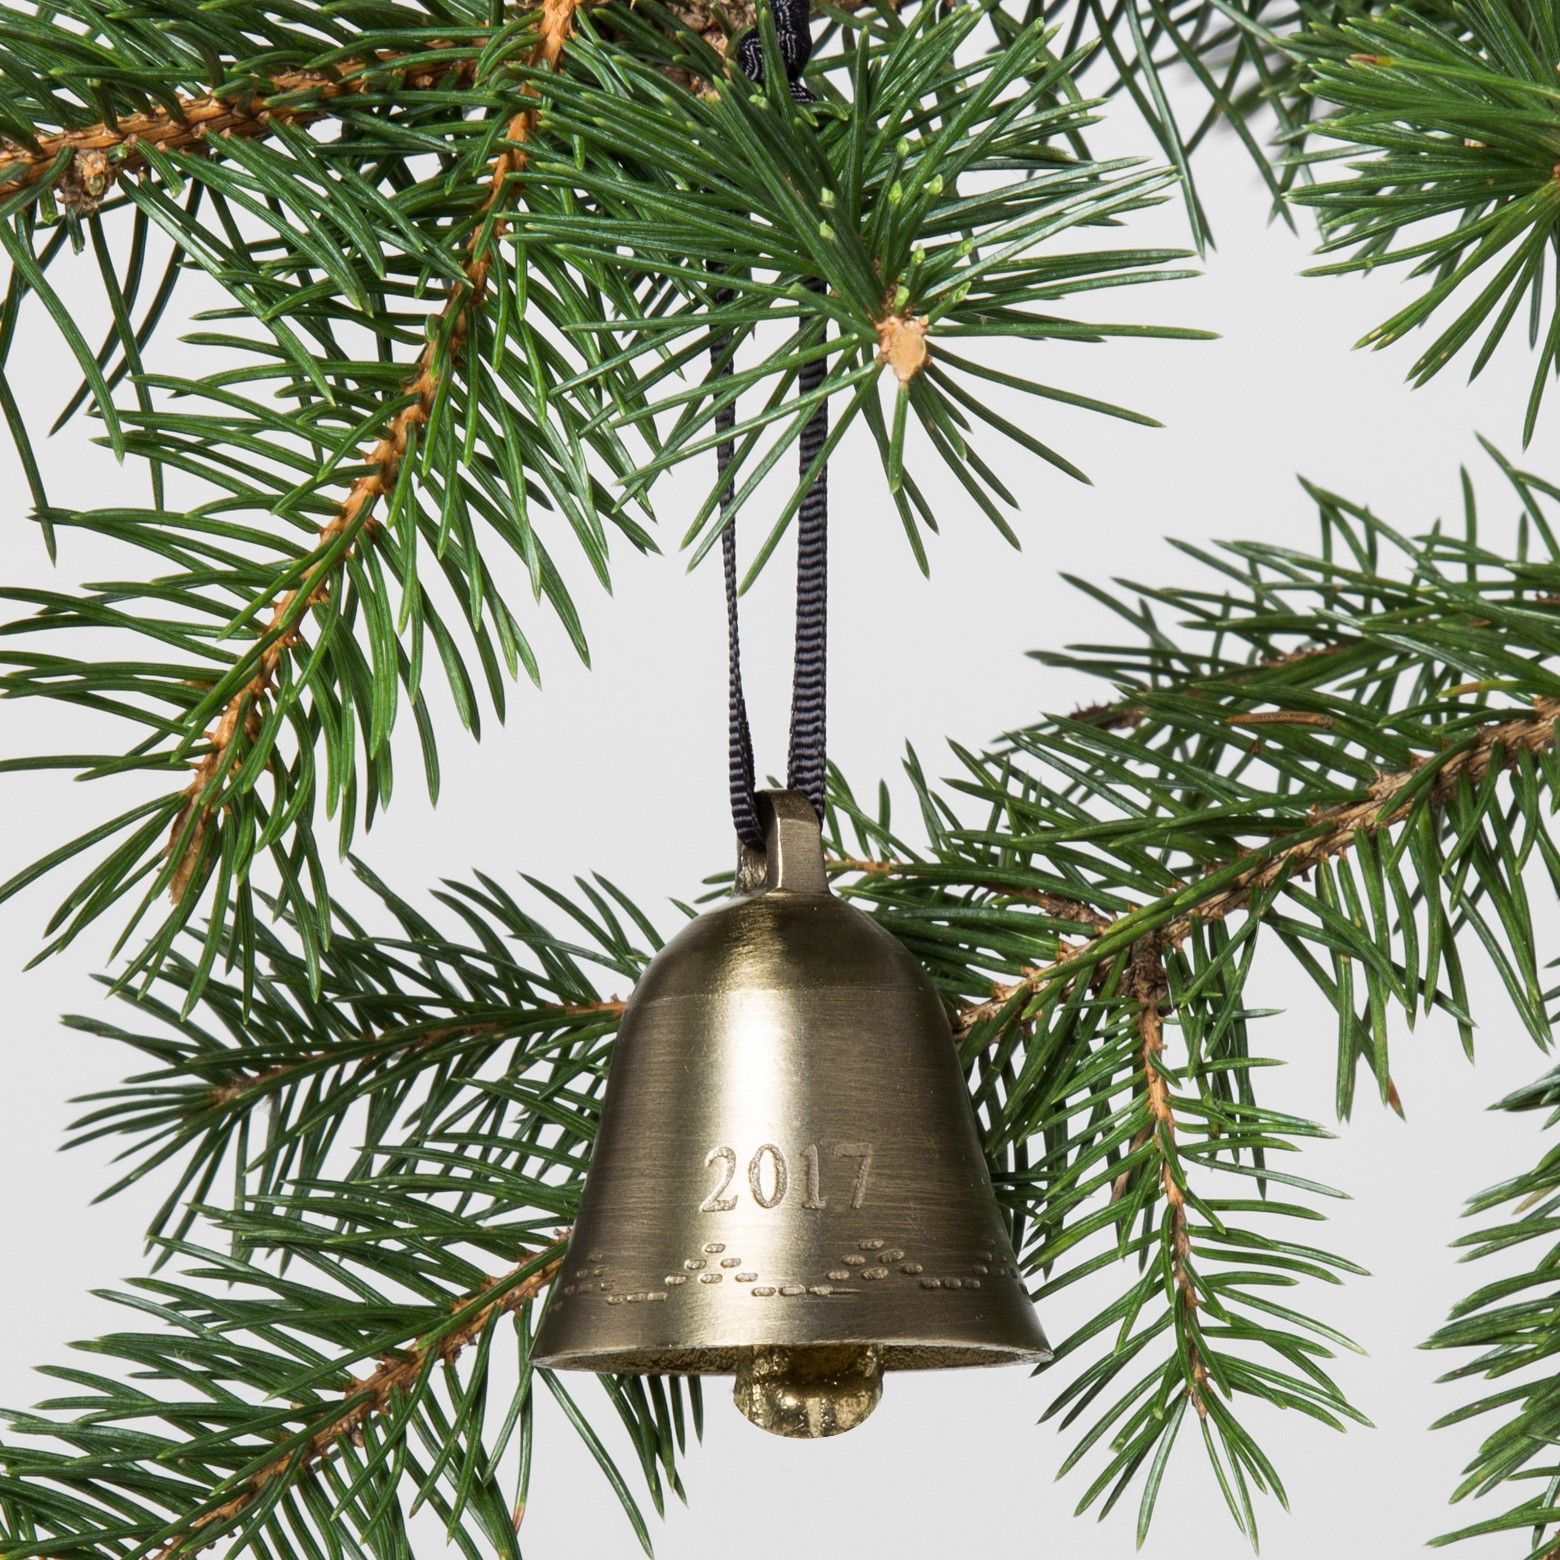 Brass Bell, Hearth and Hand, Trending Christmas Decorations 2017